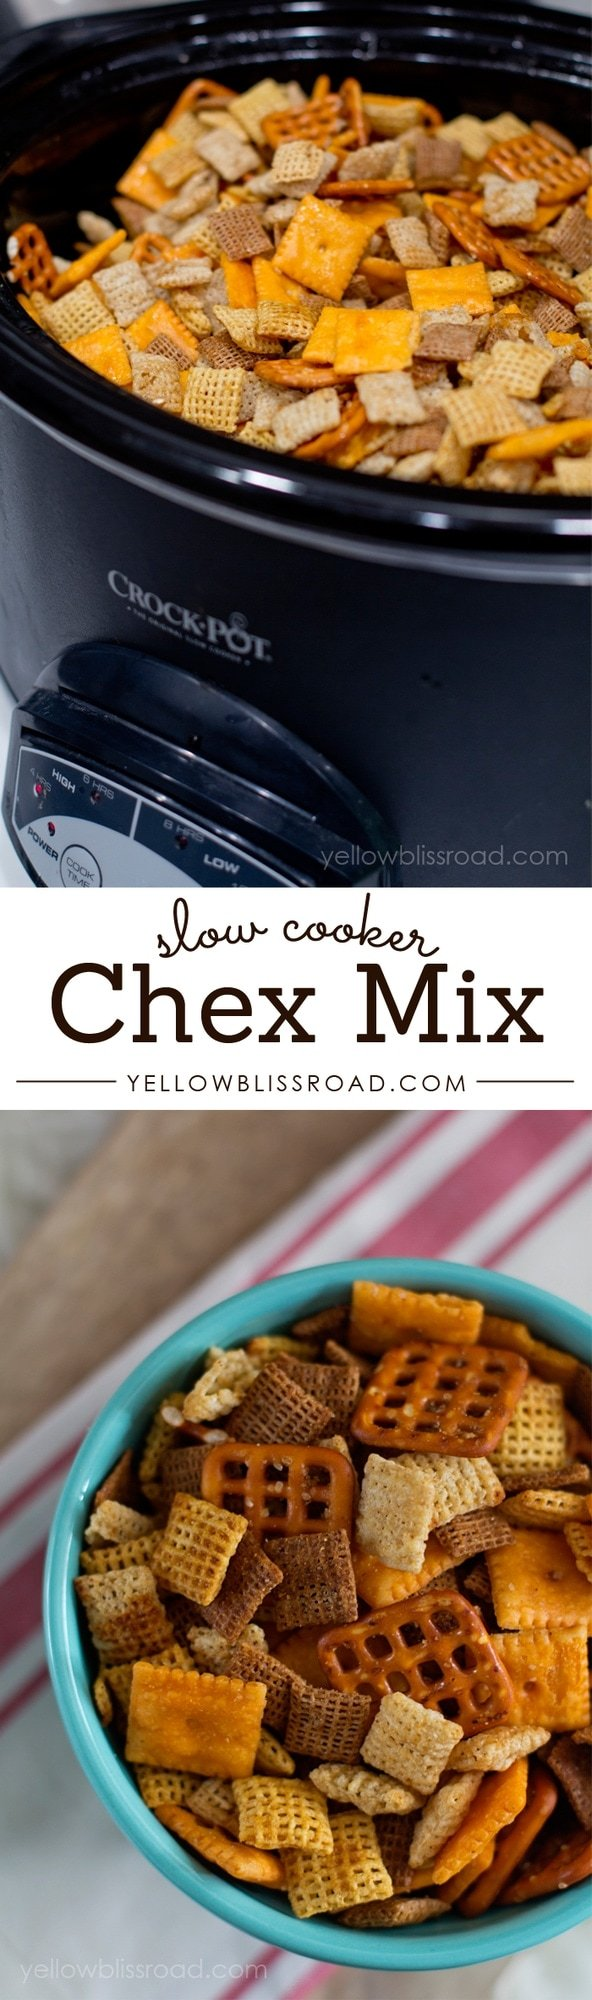 Slow Cooker Chex Mix - The easiest way to make the classic snack mix